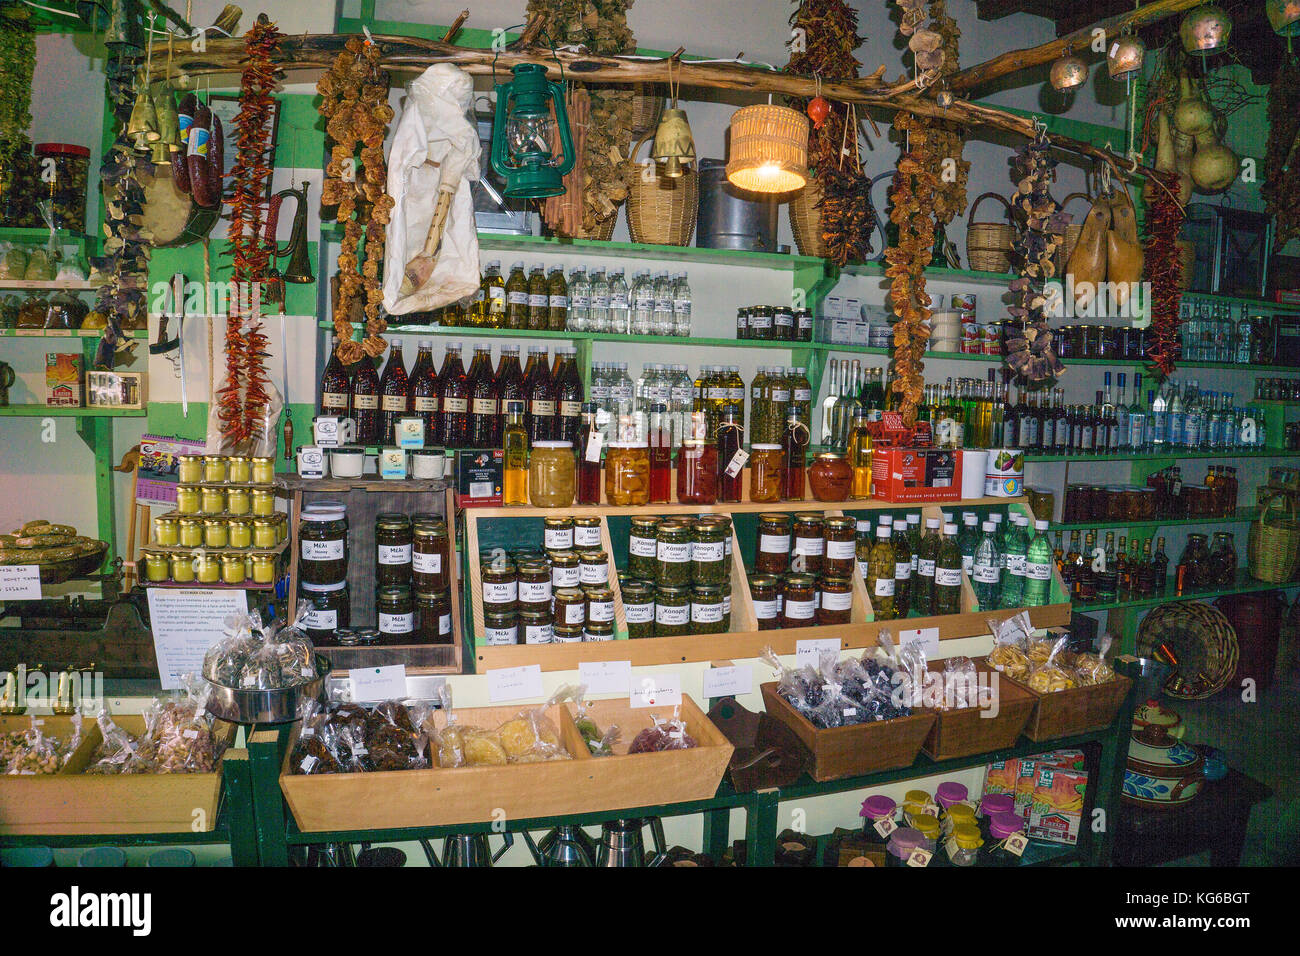 Local specialities at a shop, Apiranthos, Naxos island, Cyclades, Aegean, Greece - Stock Image